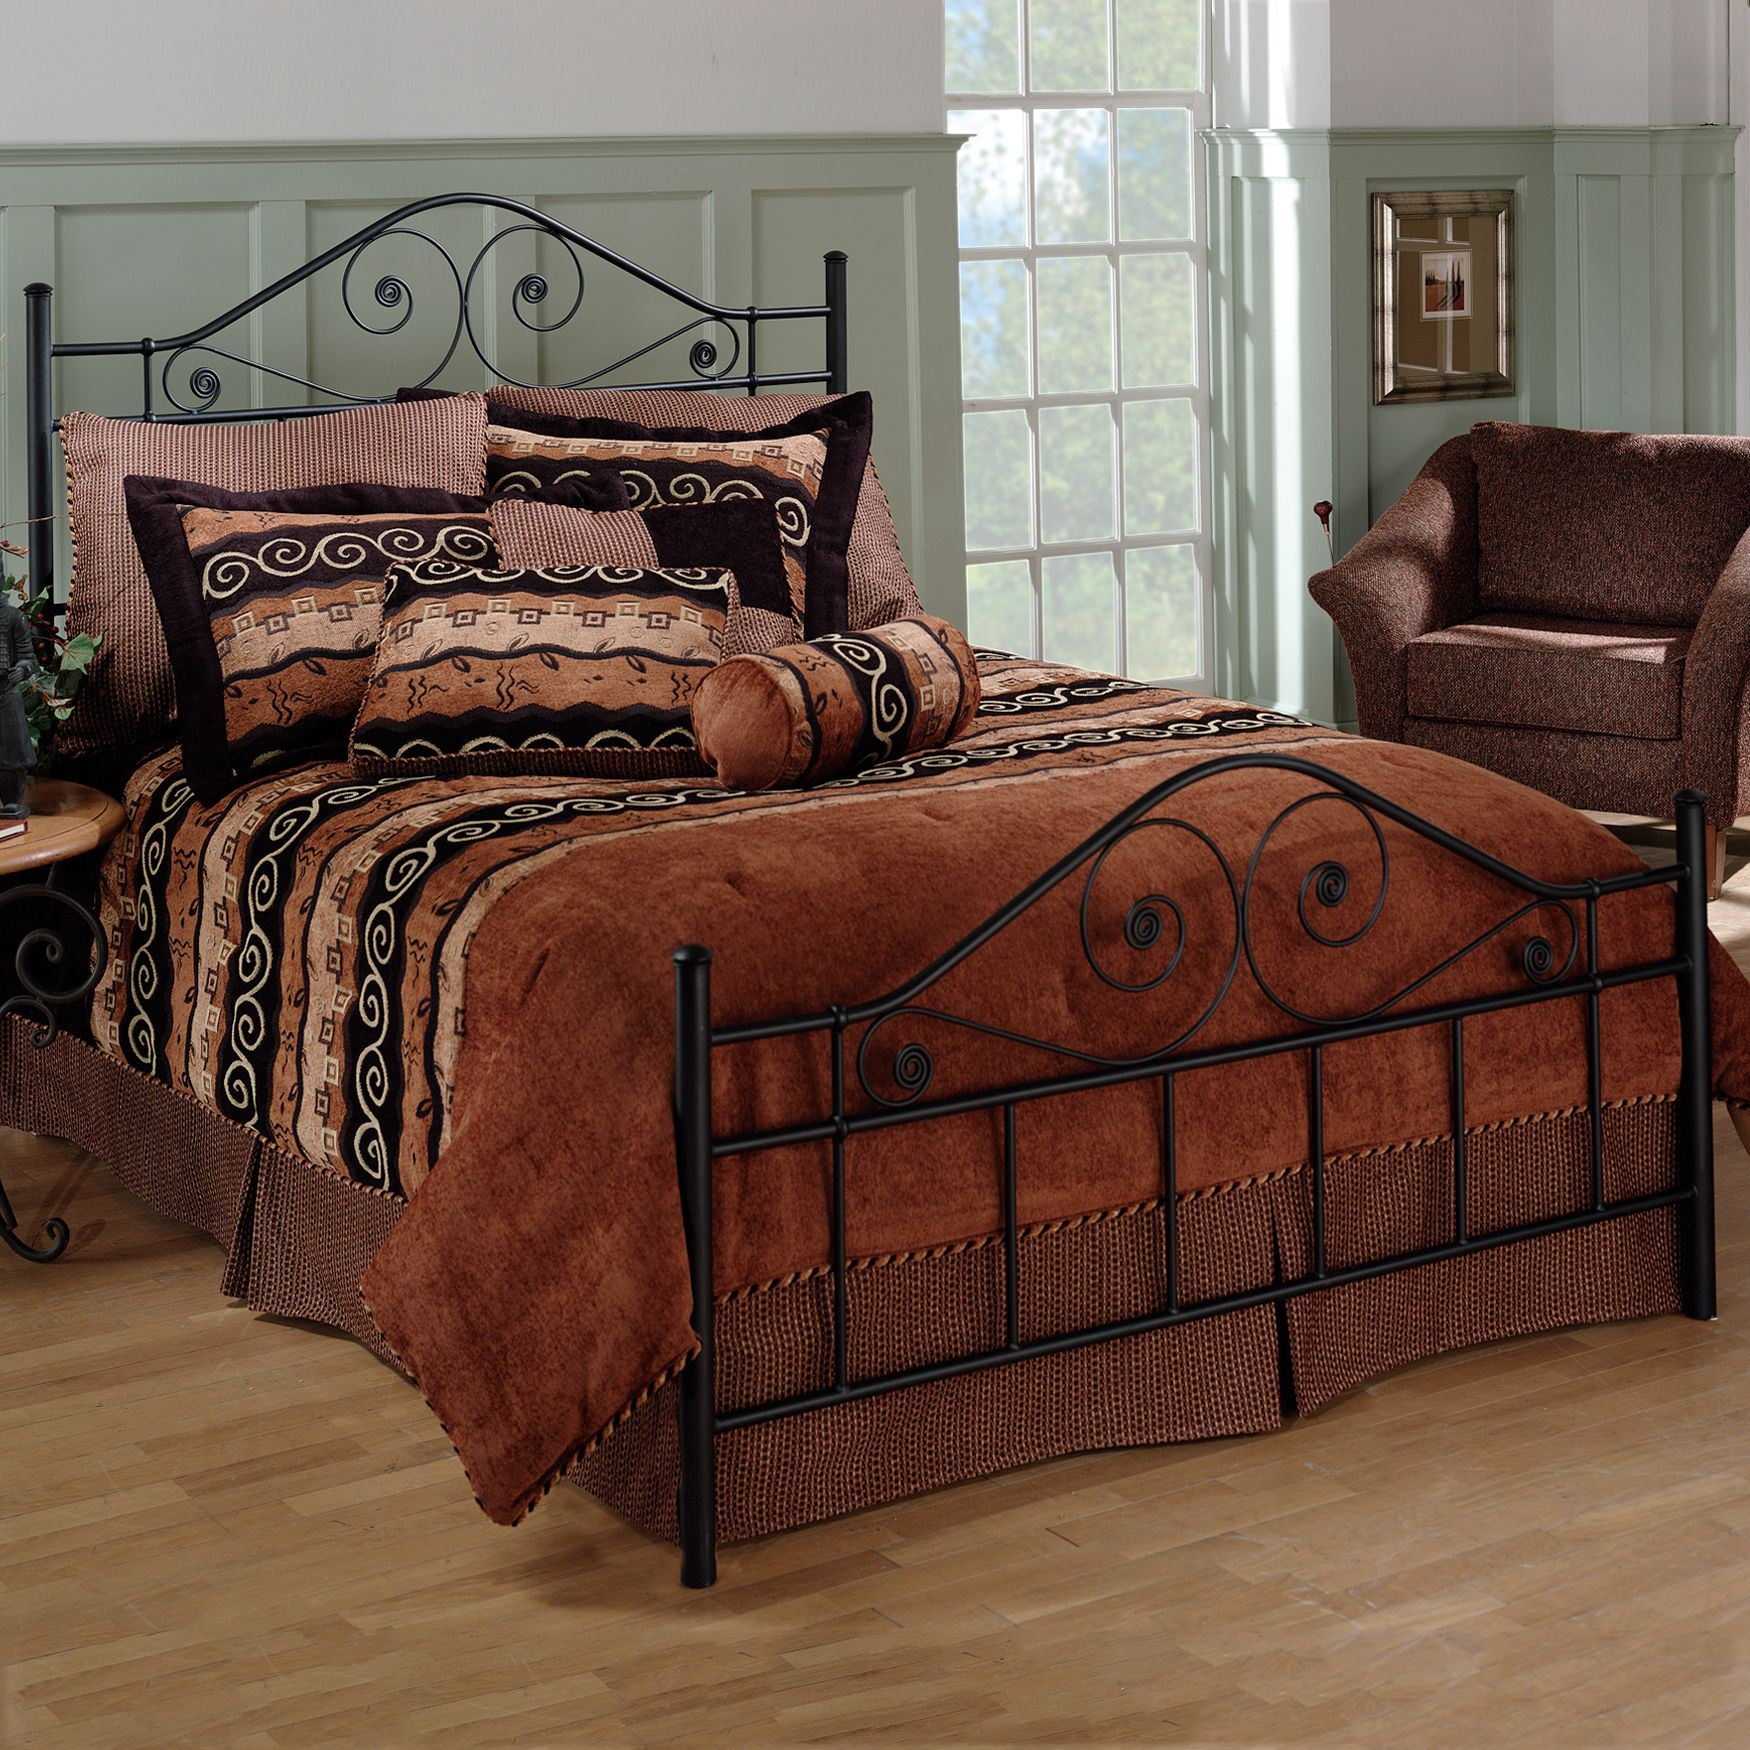 Queen Bed with Bed Frame, 83½'Lx61½'Wx51'H, BLACK